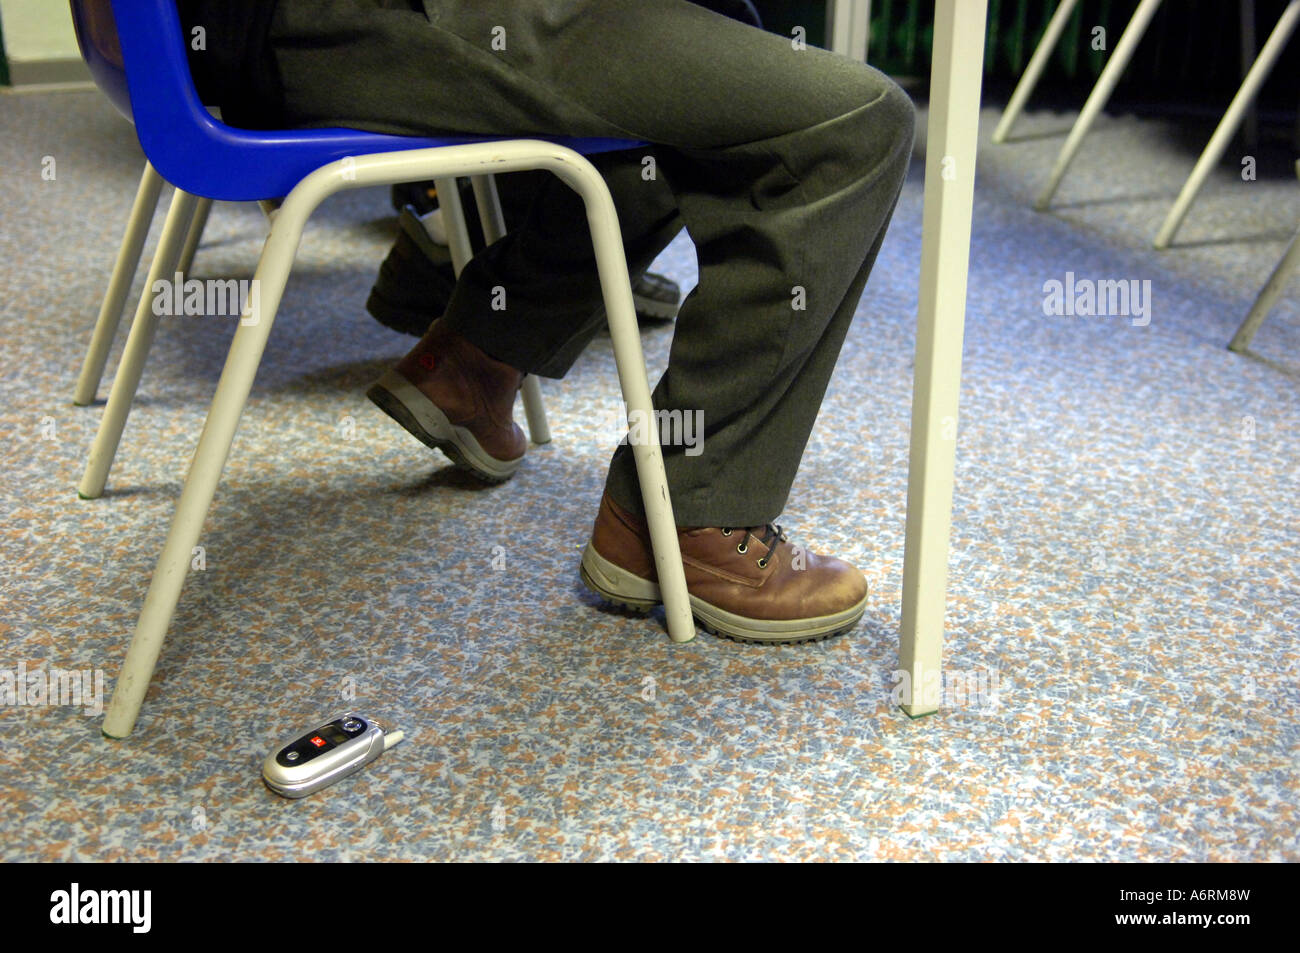 floor feet legs boy male classroom lost dropped misplaced  work study kid abandoned child school student youth young - Stock Image